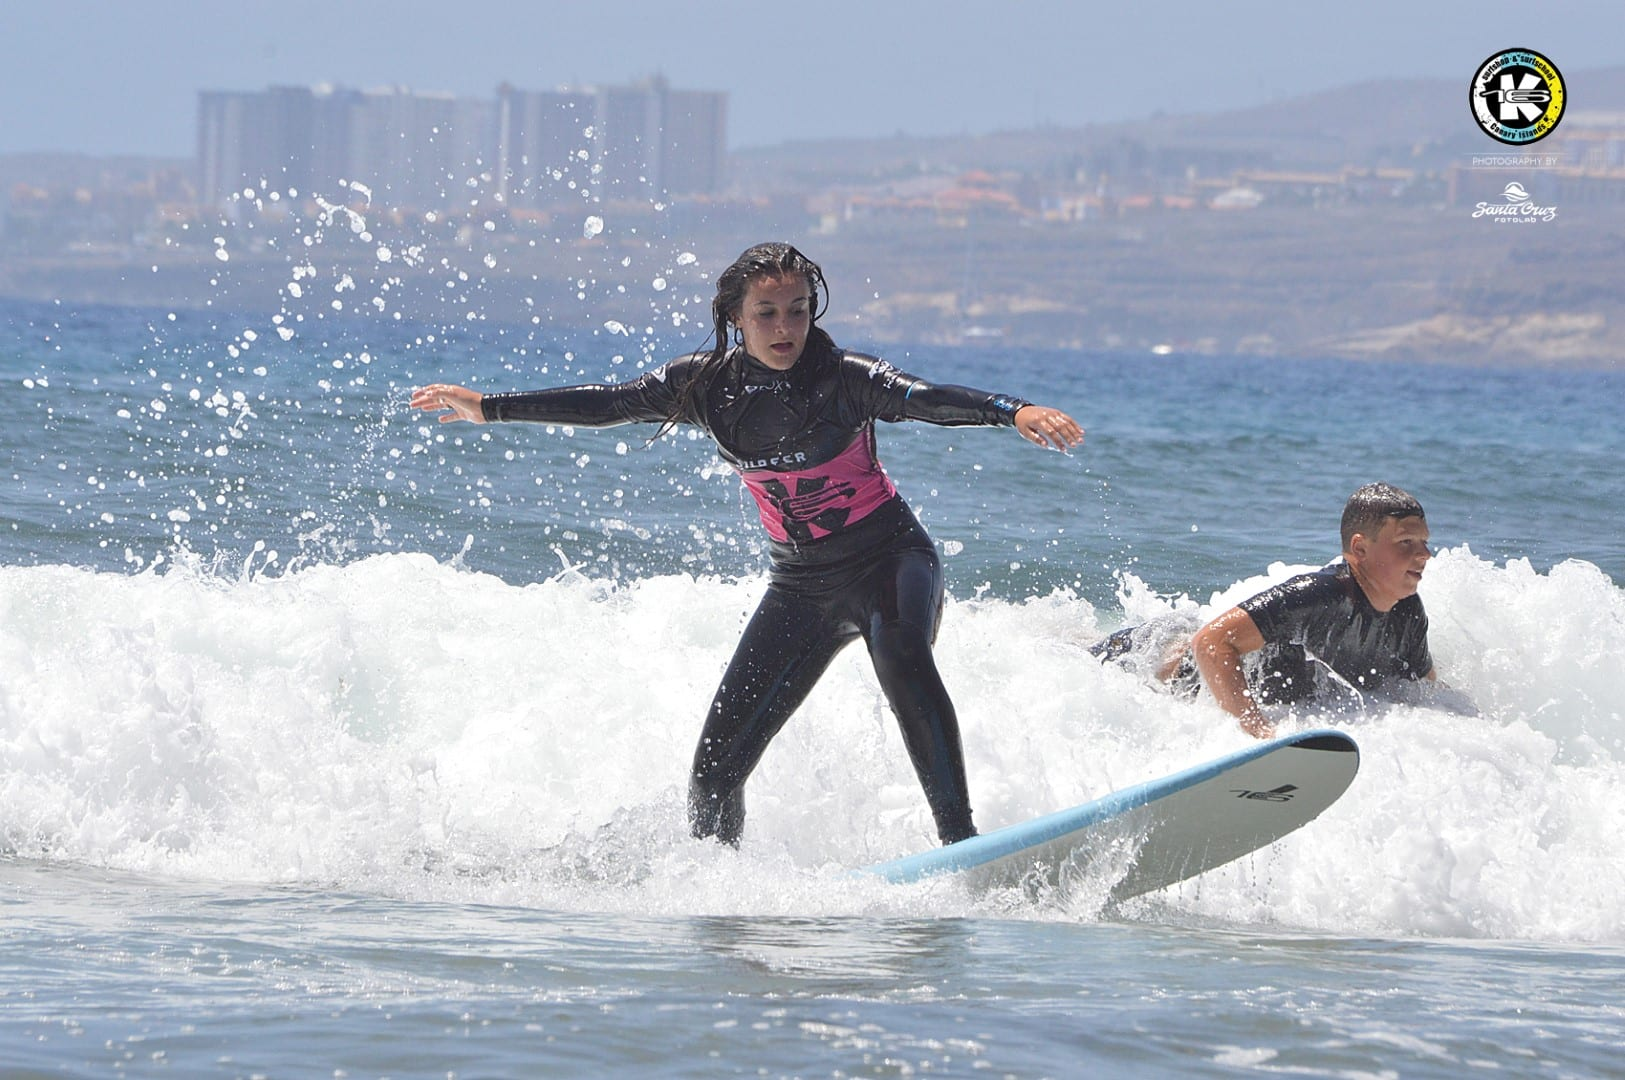 Student surfing a wave during a session of her full 5-day surf course. K16 SurfSchool Tenerife - Las Americas